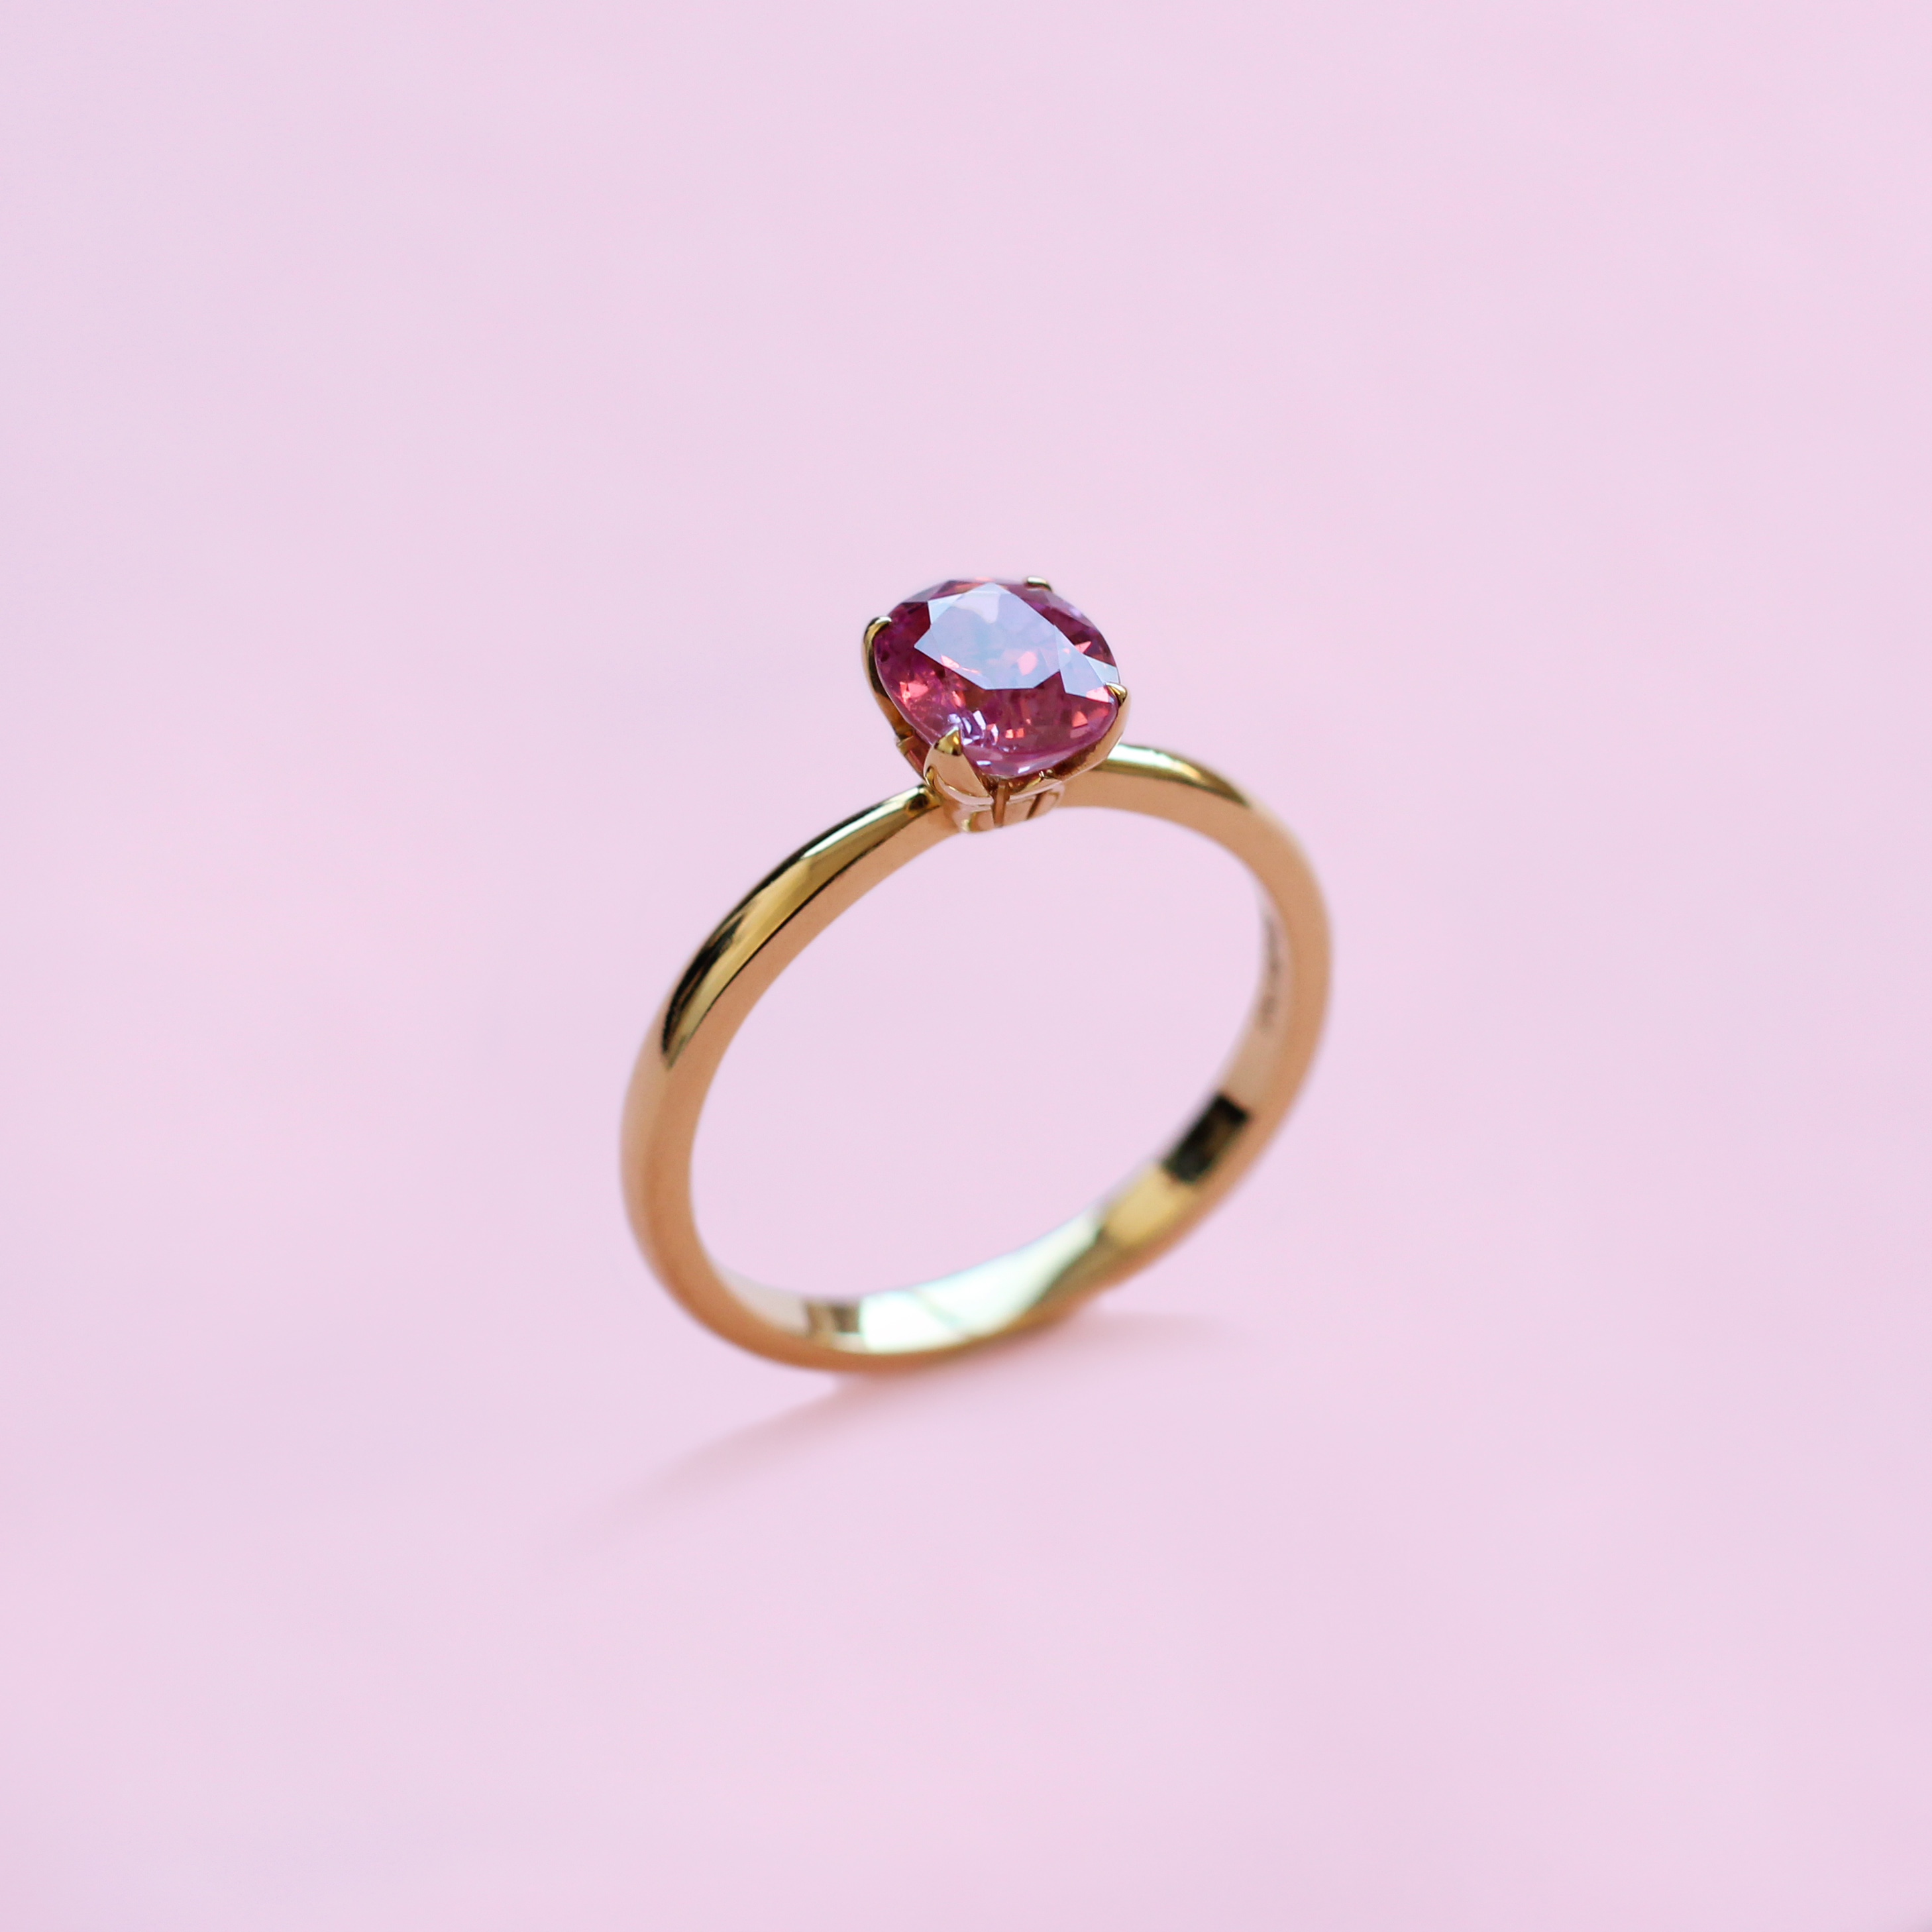 blossom solitaire ring – pink sapphire and 18k yellow gold